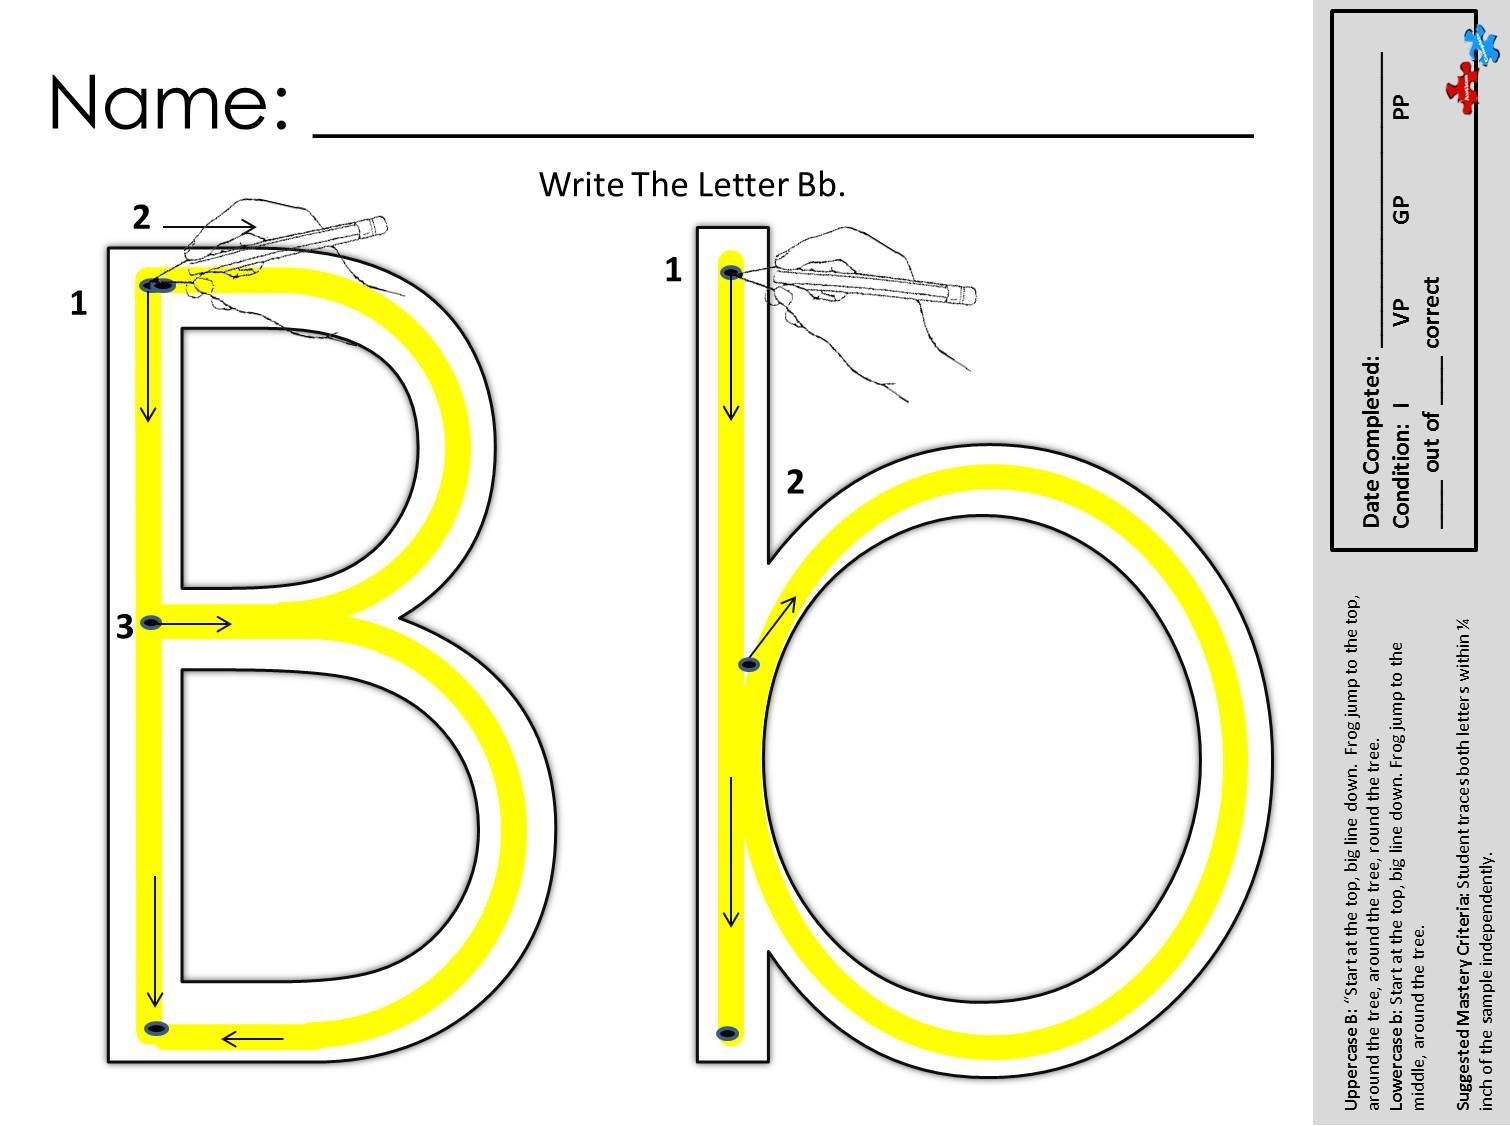 Find This And Other Great Free Printable Handwriting